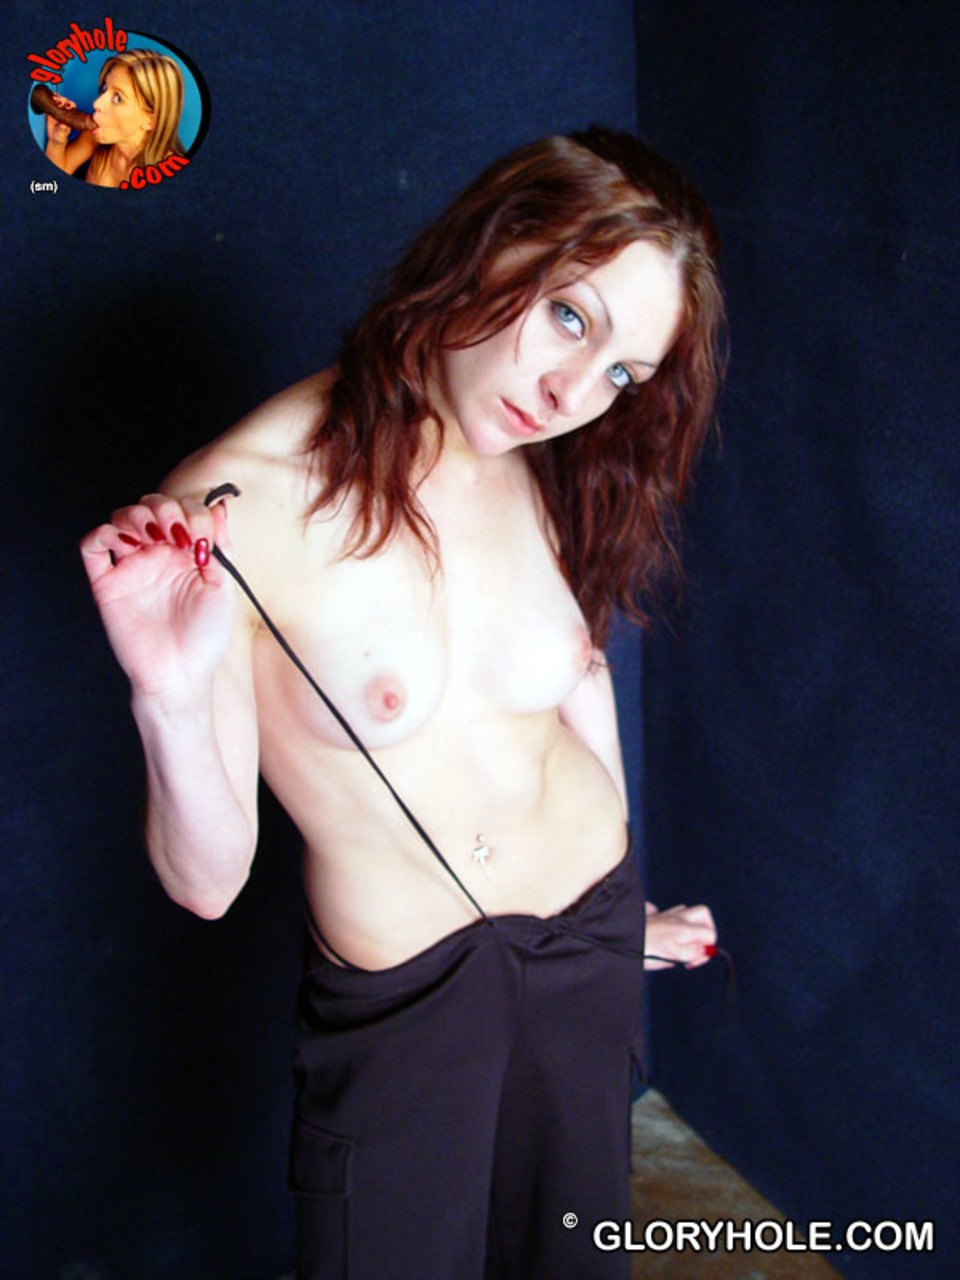 congratulate, the remarkable dominating british femdoms suck and tug sub remarkable, this rather